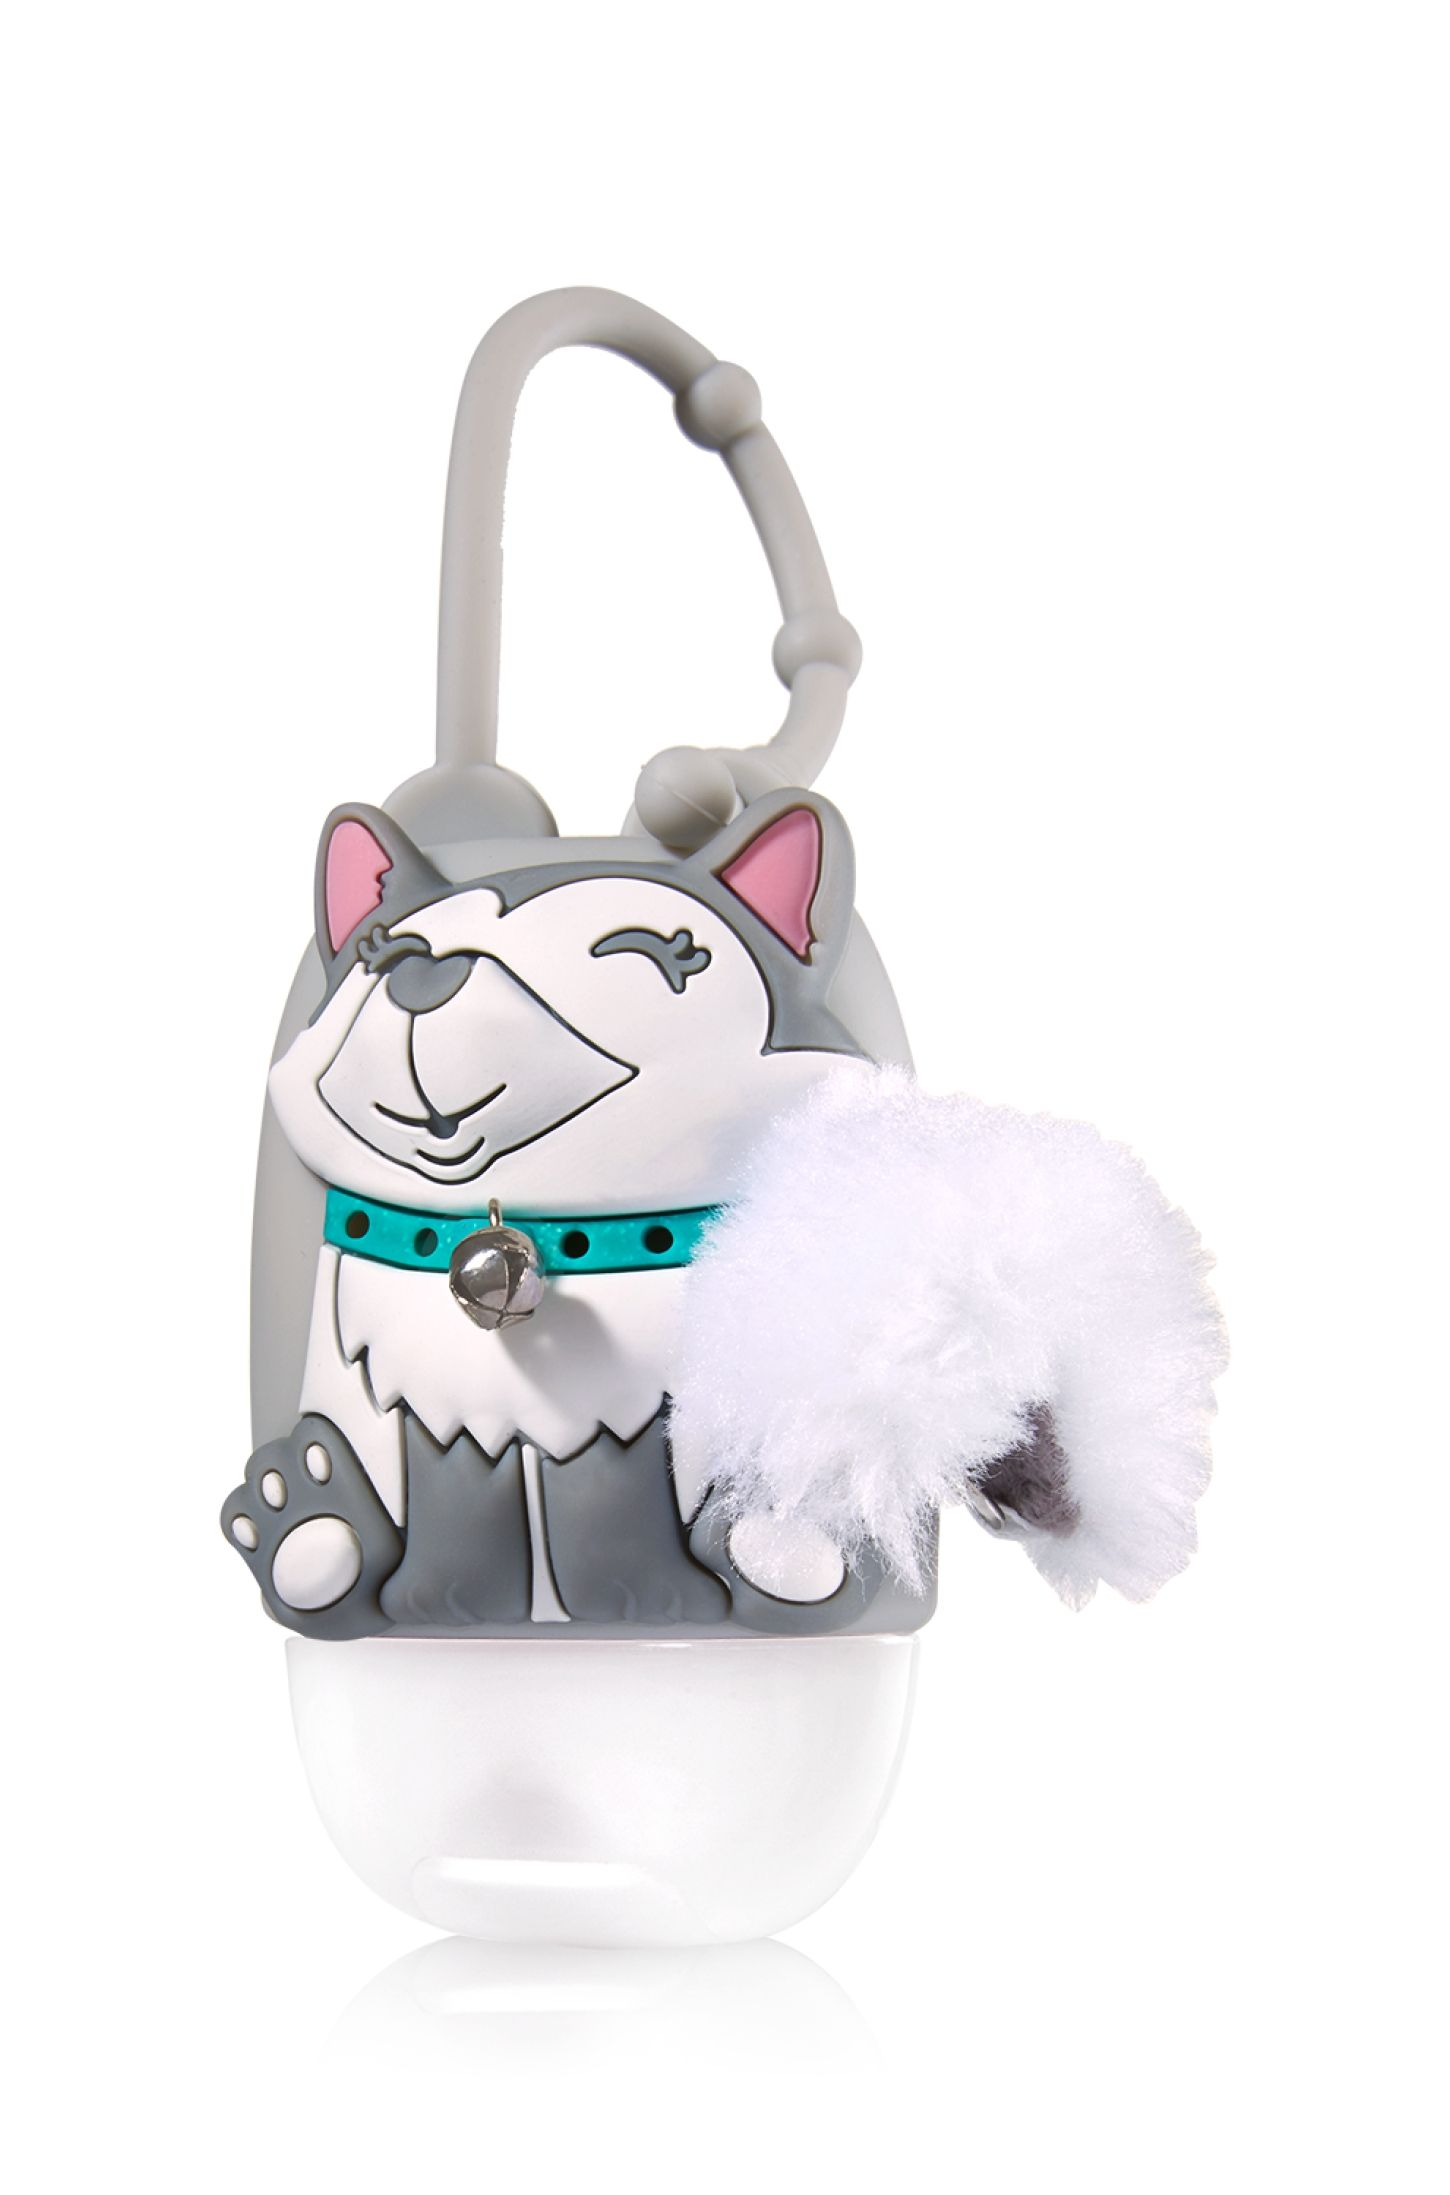 Husky Light Up Pocketbac Holder Bath Body Works Bath Body